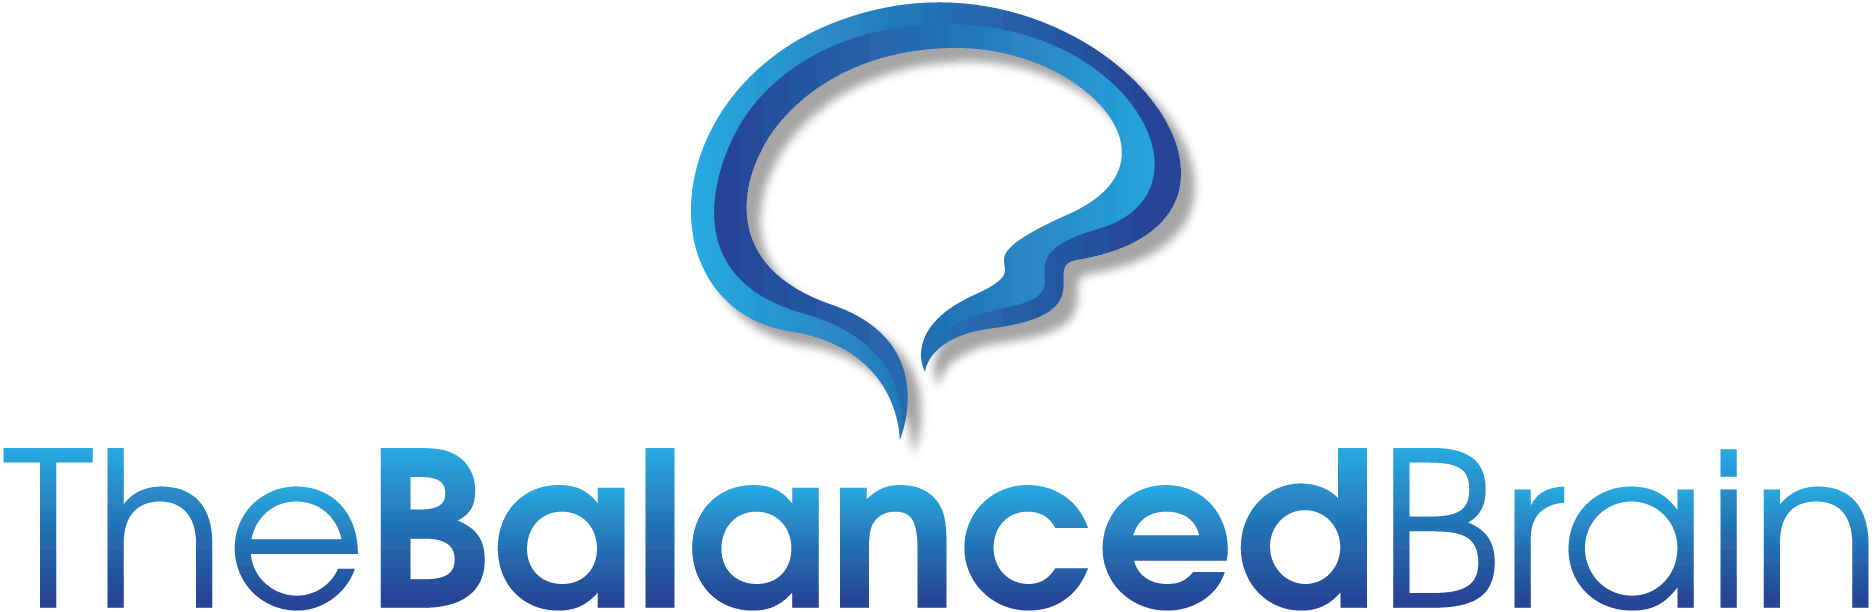 The Balanced Brain | Neurofeedback Therapy